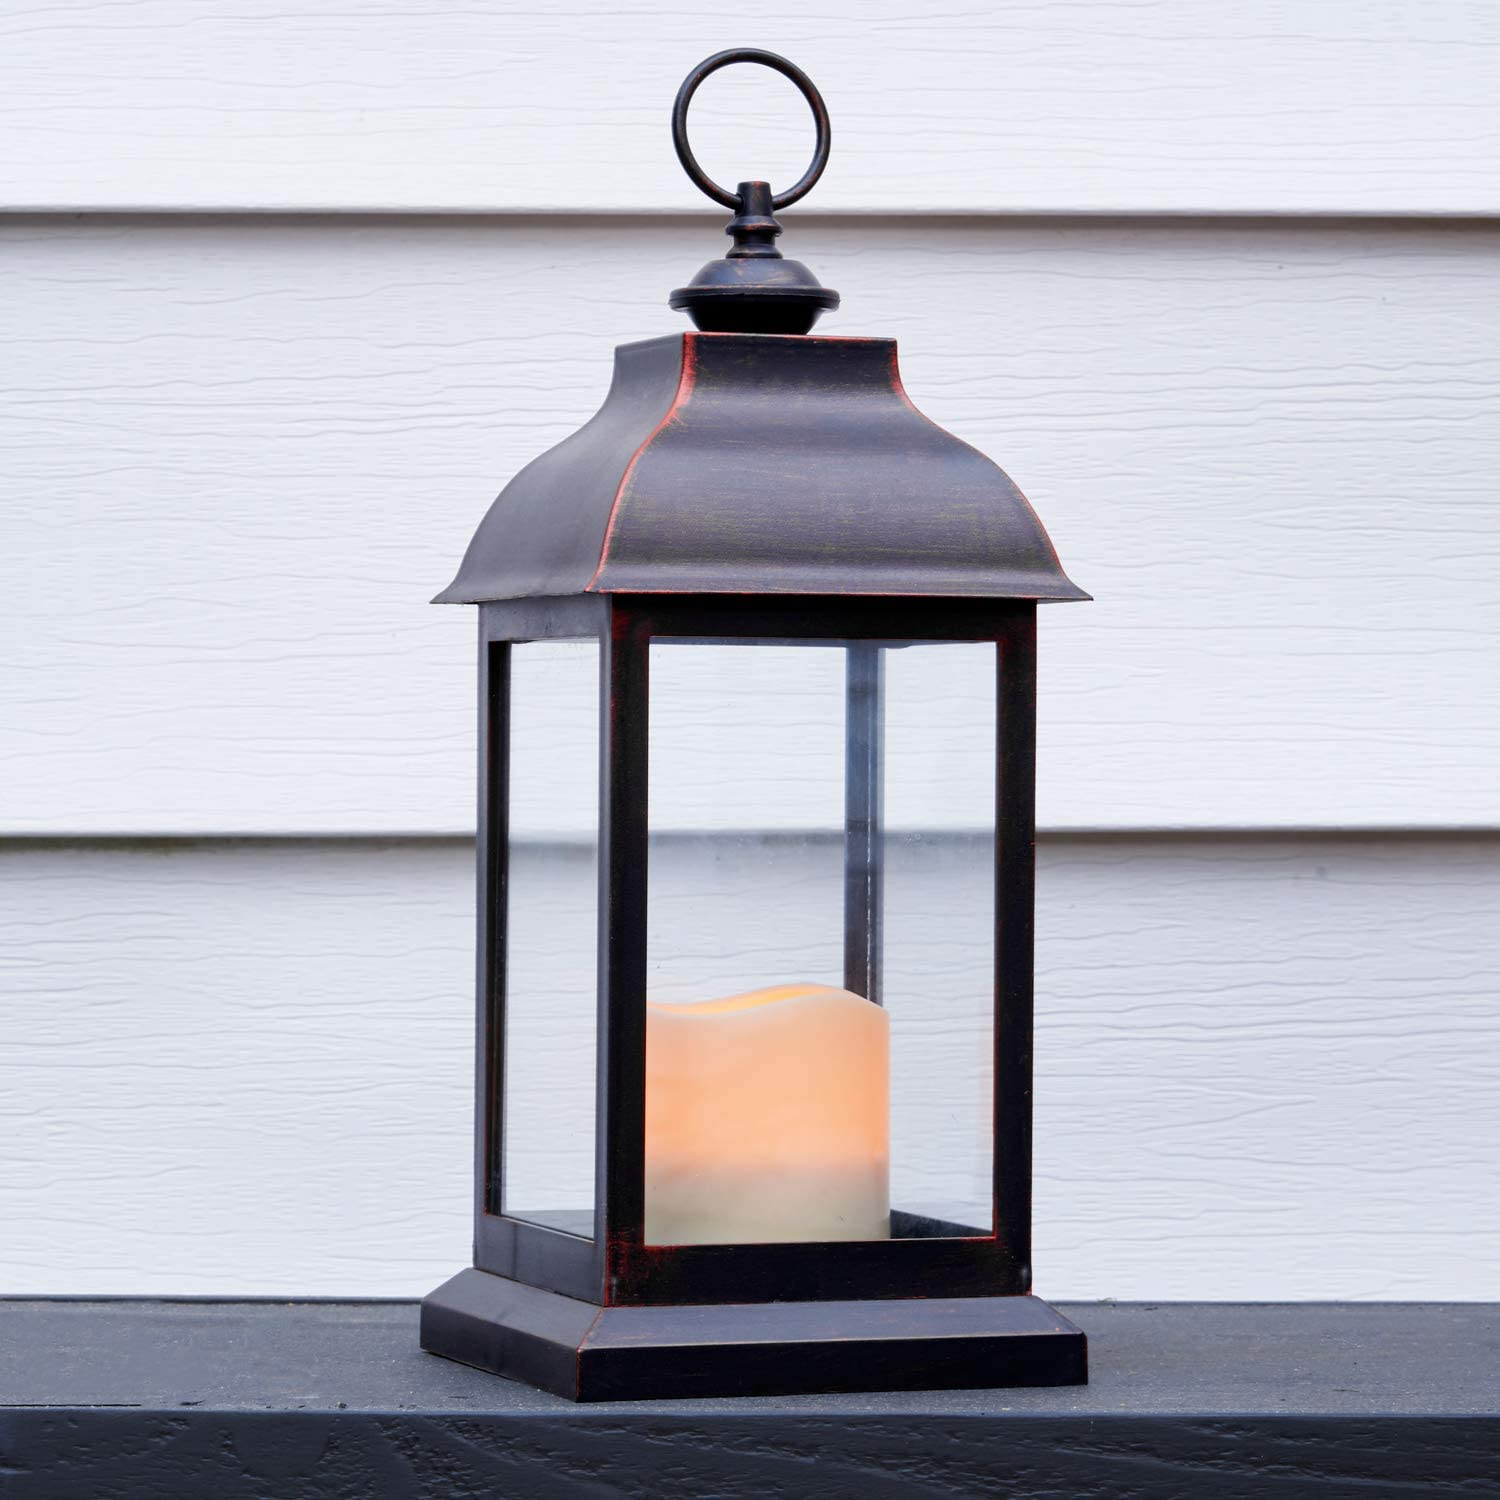 Outdoor LED Candle Lantern - 12 Inch Tall, Battery Powered, 6 Hour Timer, Waterproof, Rustic Bronze Finish, Hanging Hook, Flickering Flameless Light, Decorative Halloween Lighting